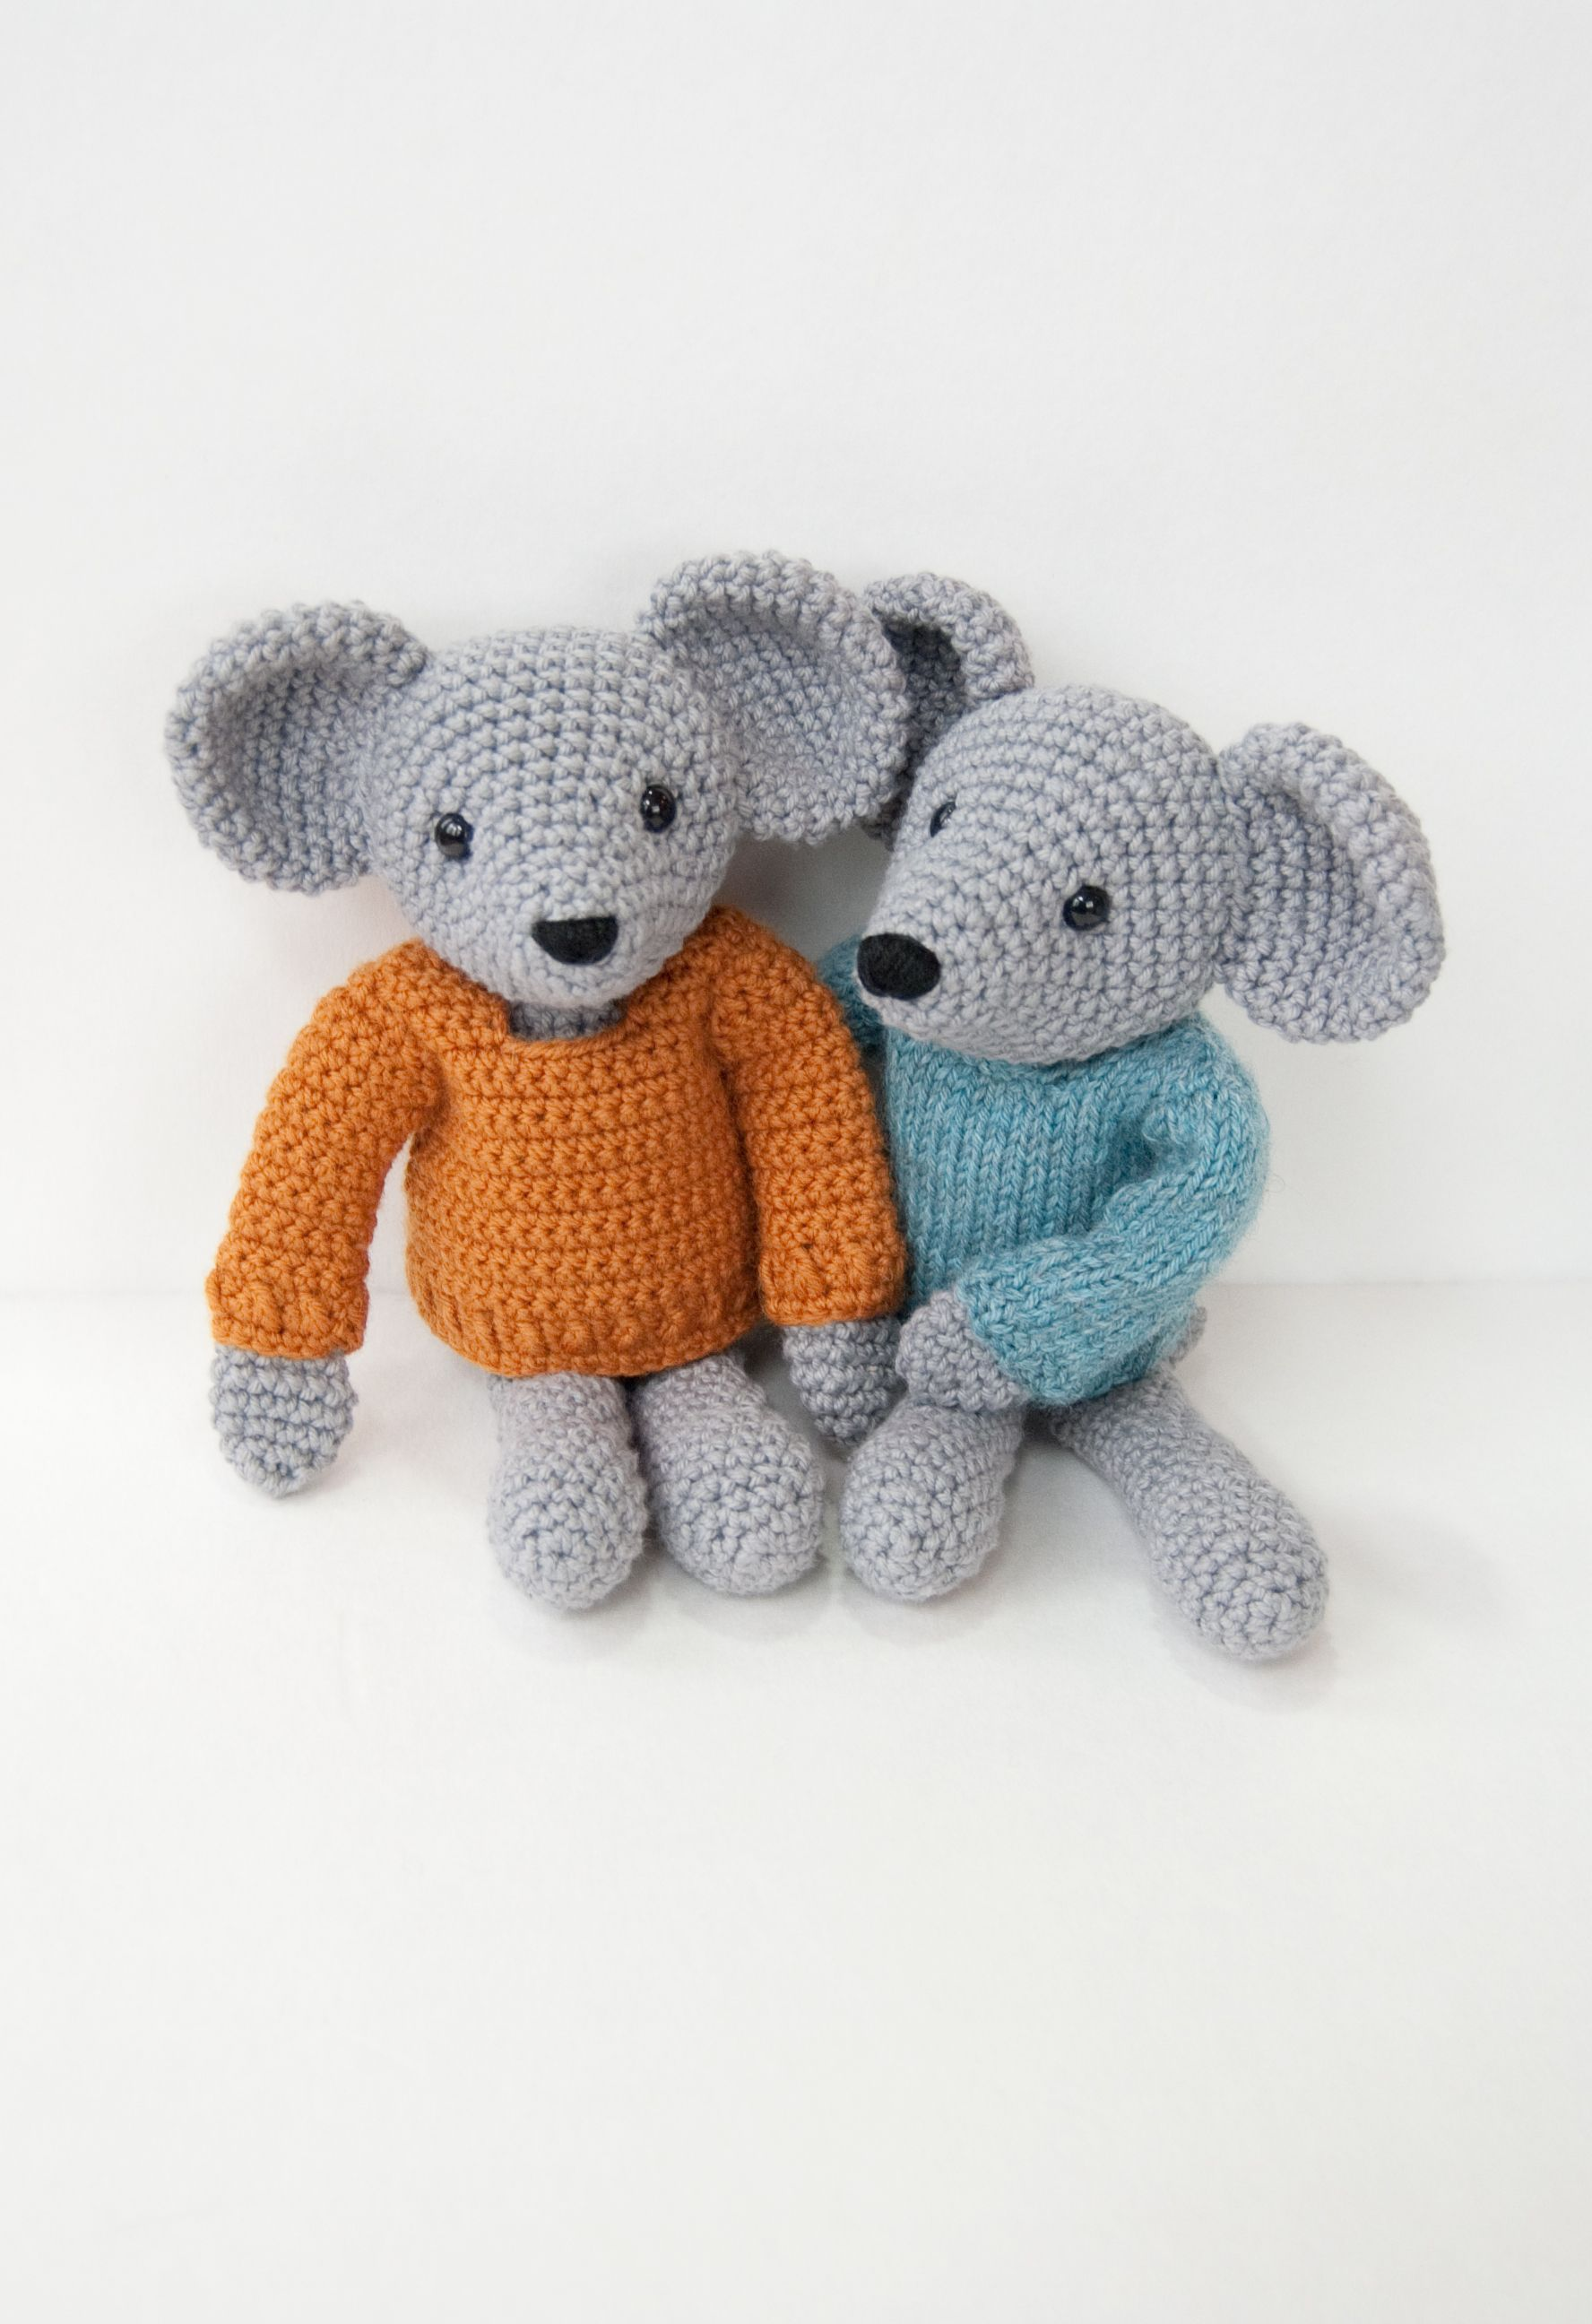 Crochet Pattern Free Mouse : Mouse Pattern - Knitting Patterns and Crochet Patterns ...